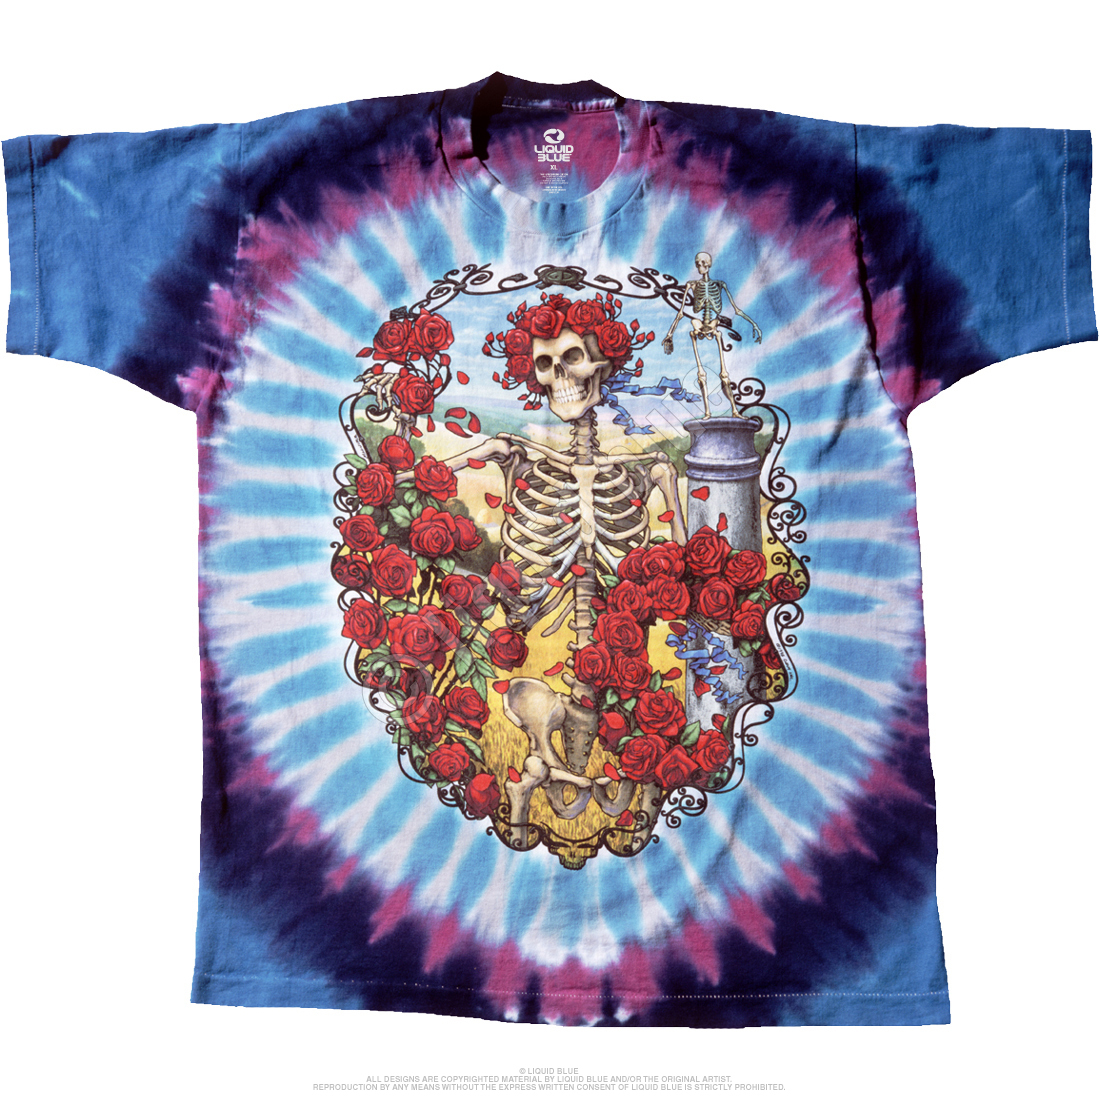 fa241dfc299 Grateful Dead Bertha 30th Anniversary Tie Dye T Shirt – Have to Have ...